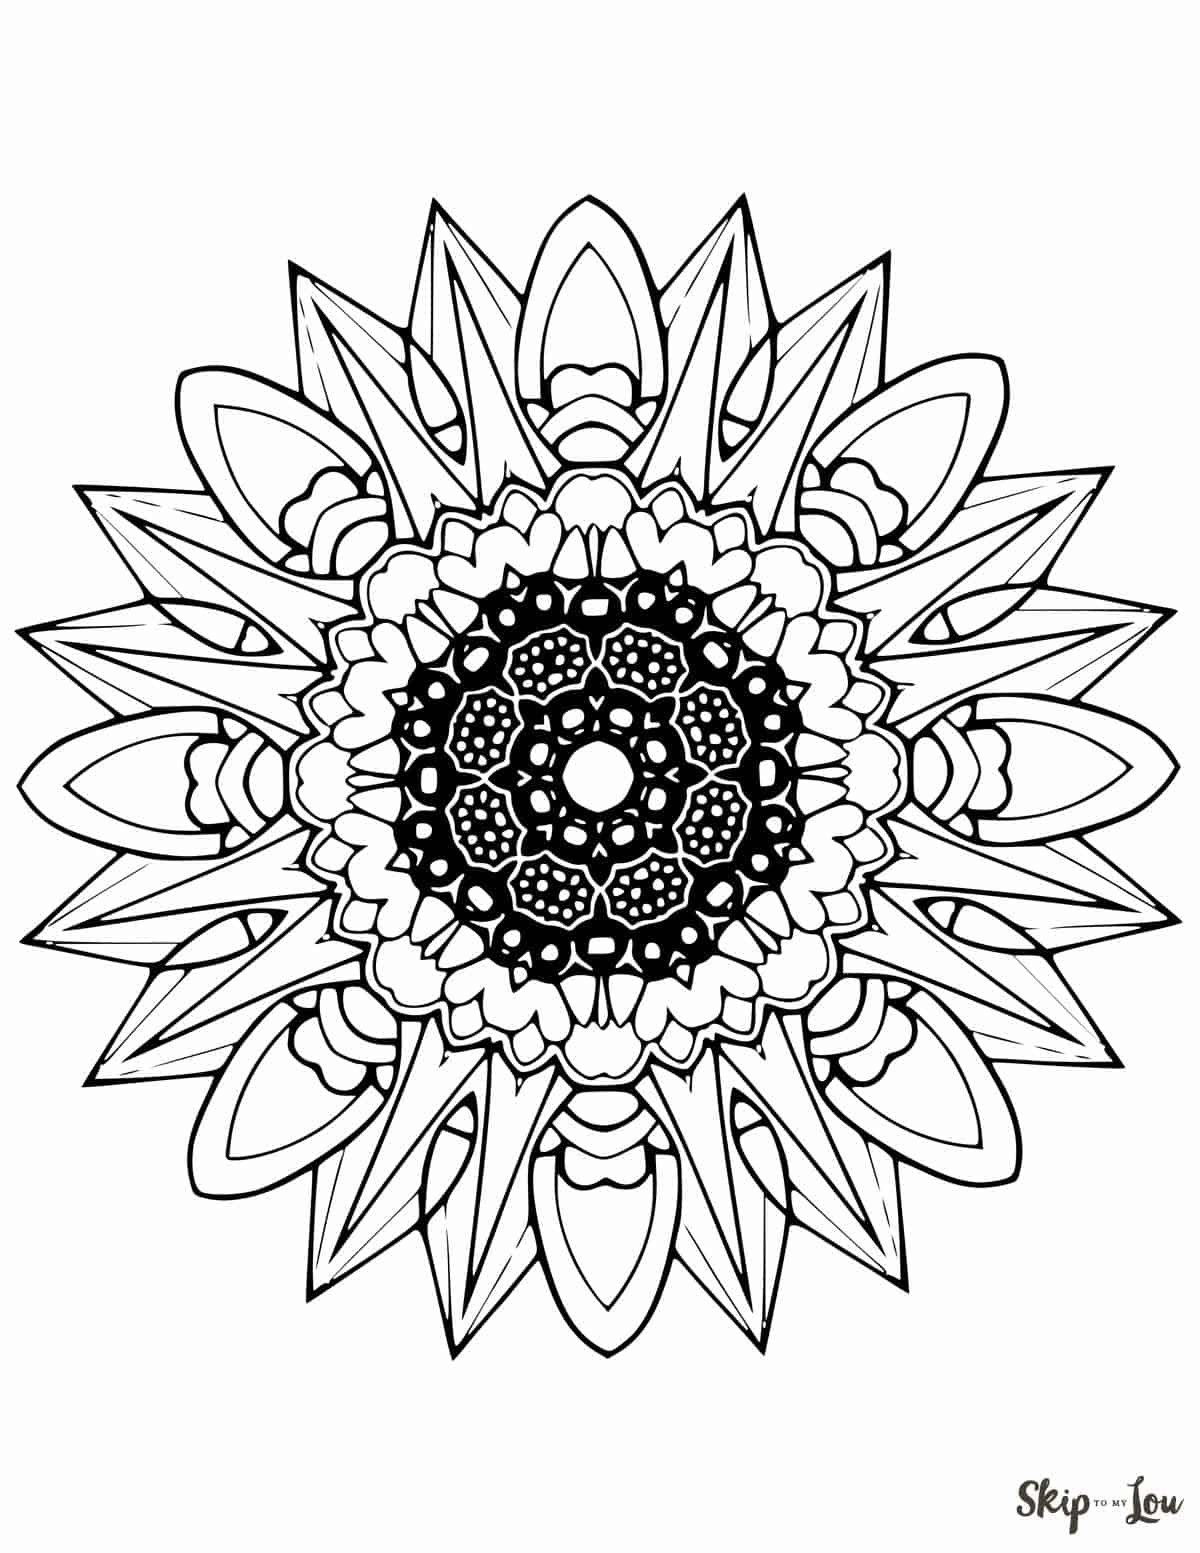 Color Your Stress Away With Mandala Coloring Pages | Skip ... | free coloring pages mandalas